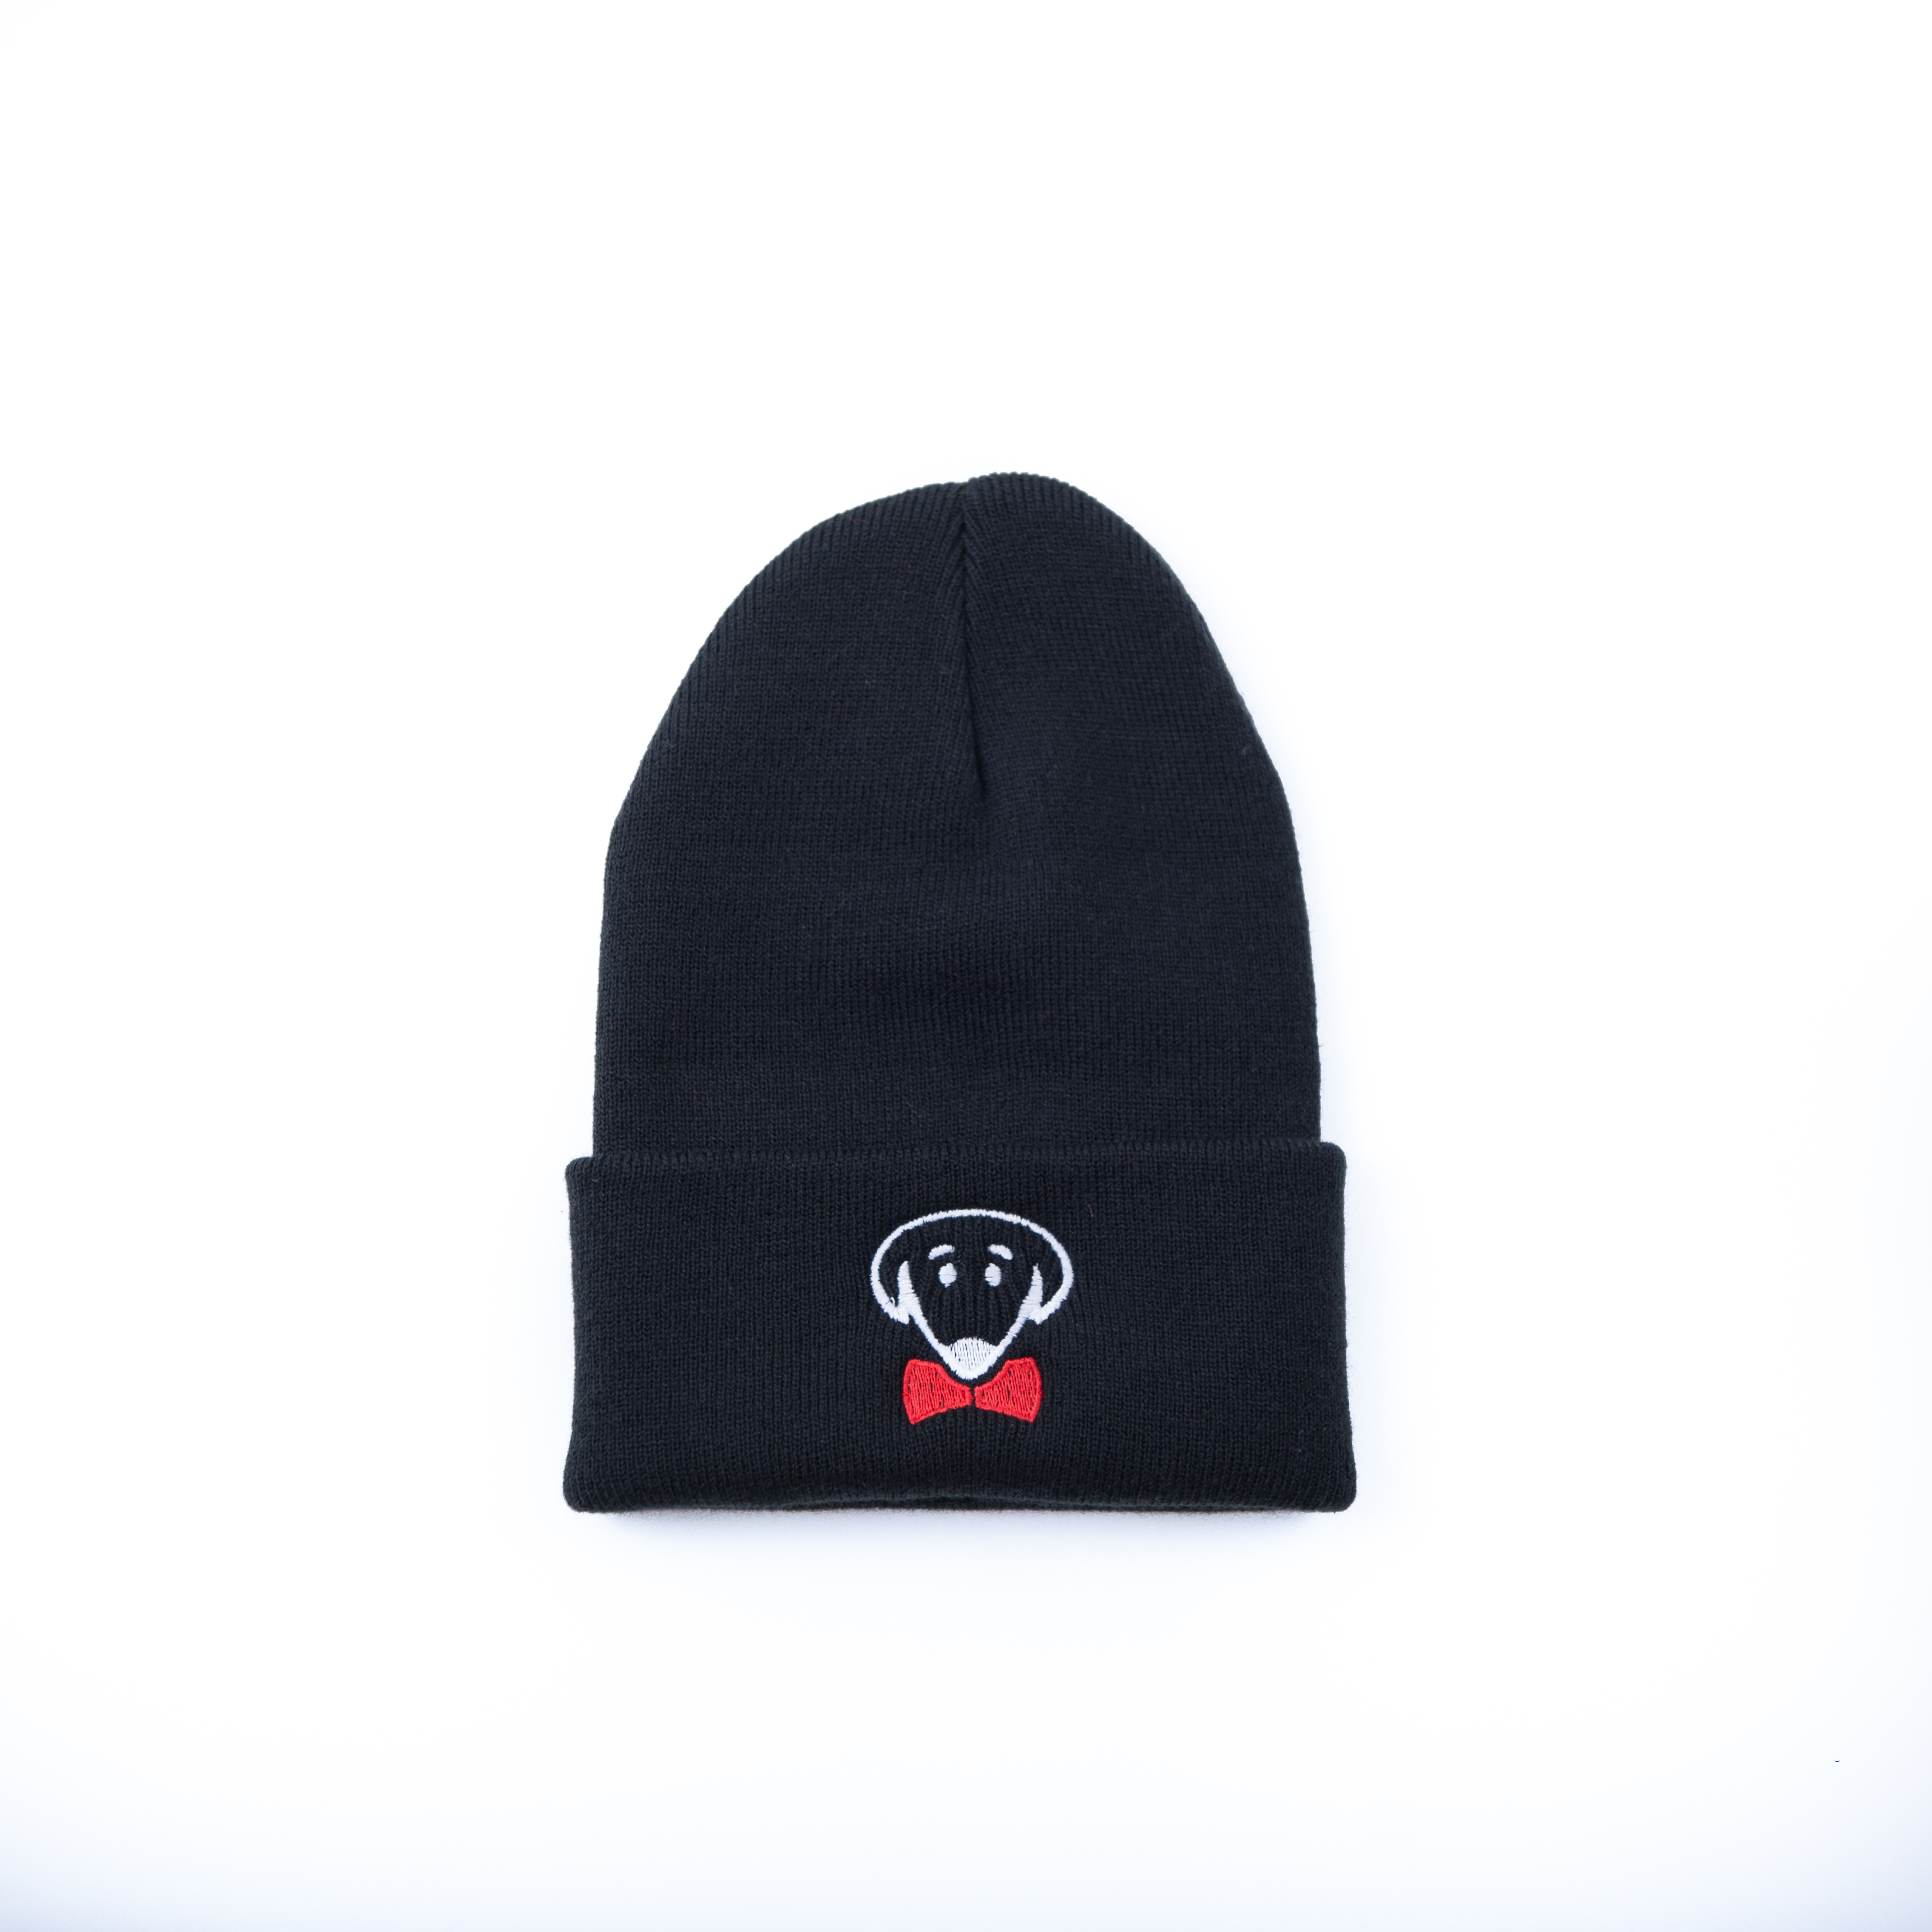 Black knit hat beanie with dog logo